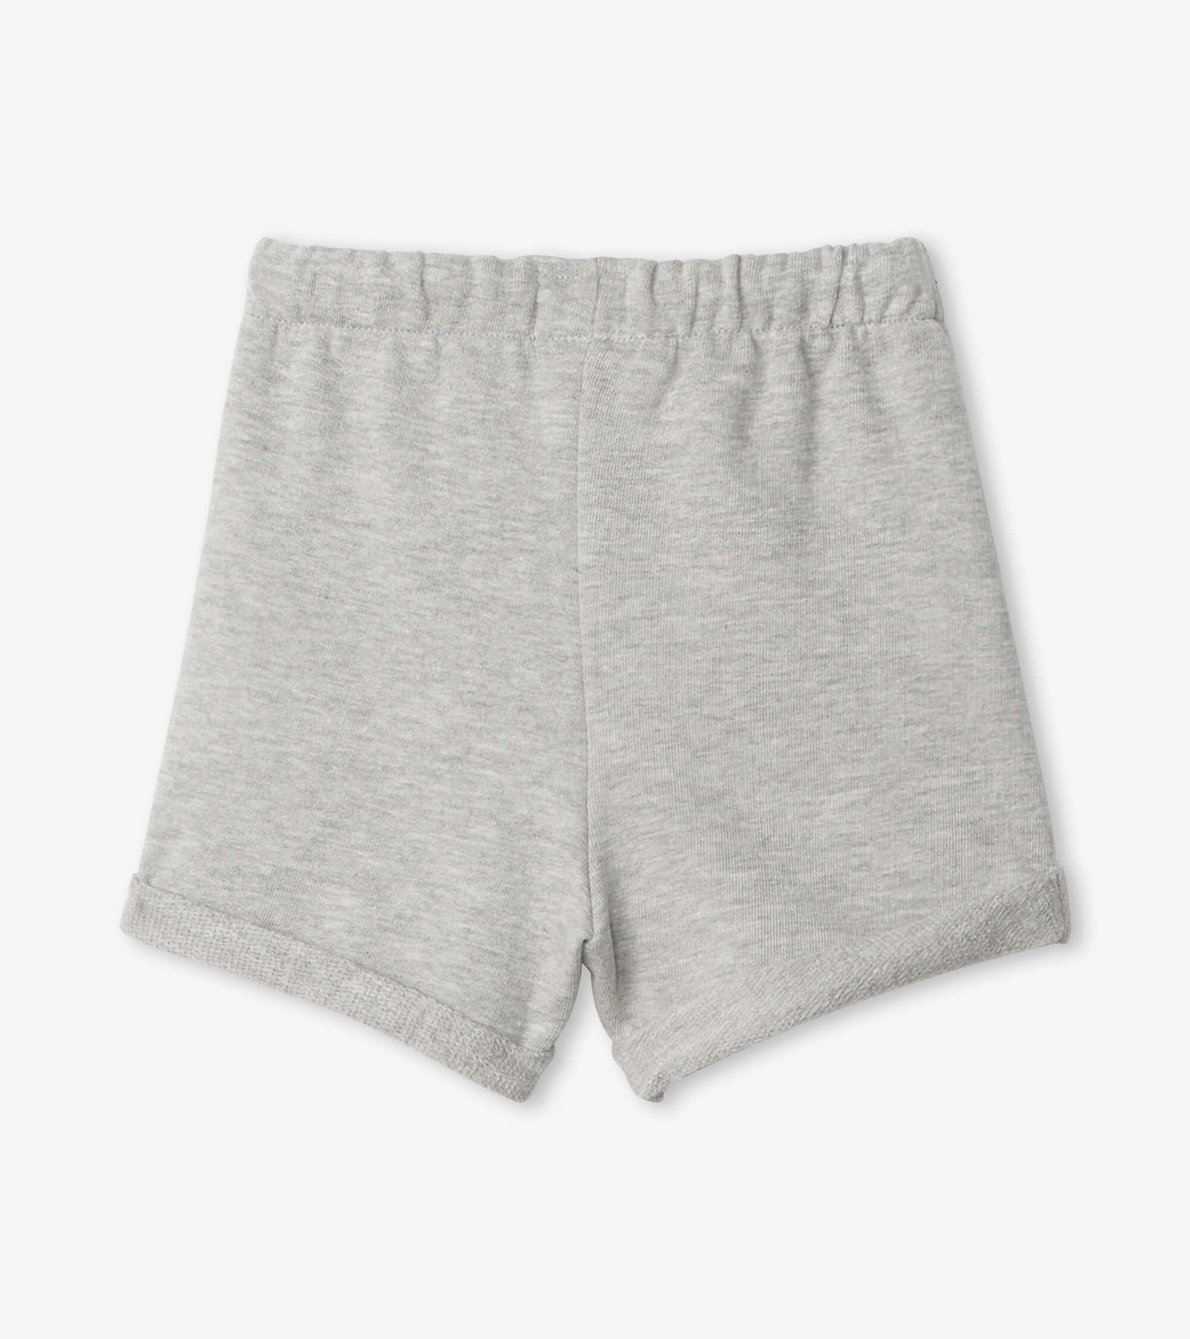 View larger image of Grey French Terry Baby Shorts